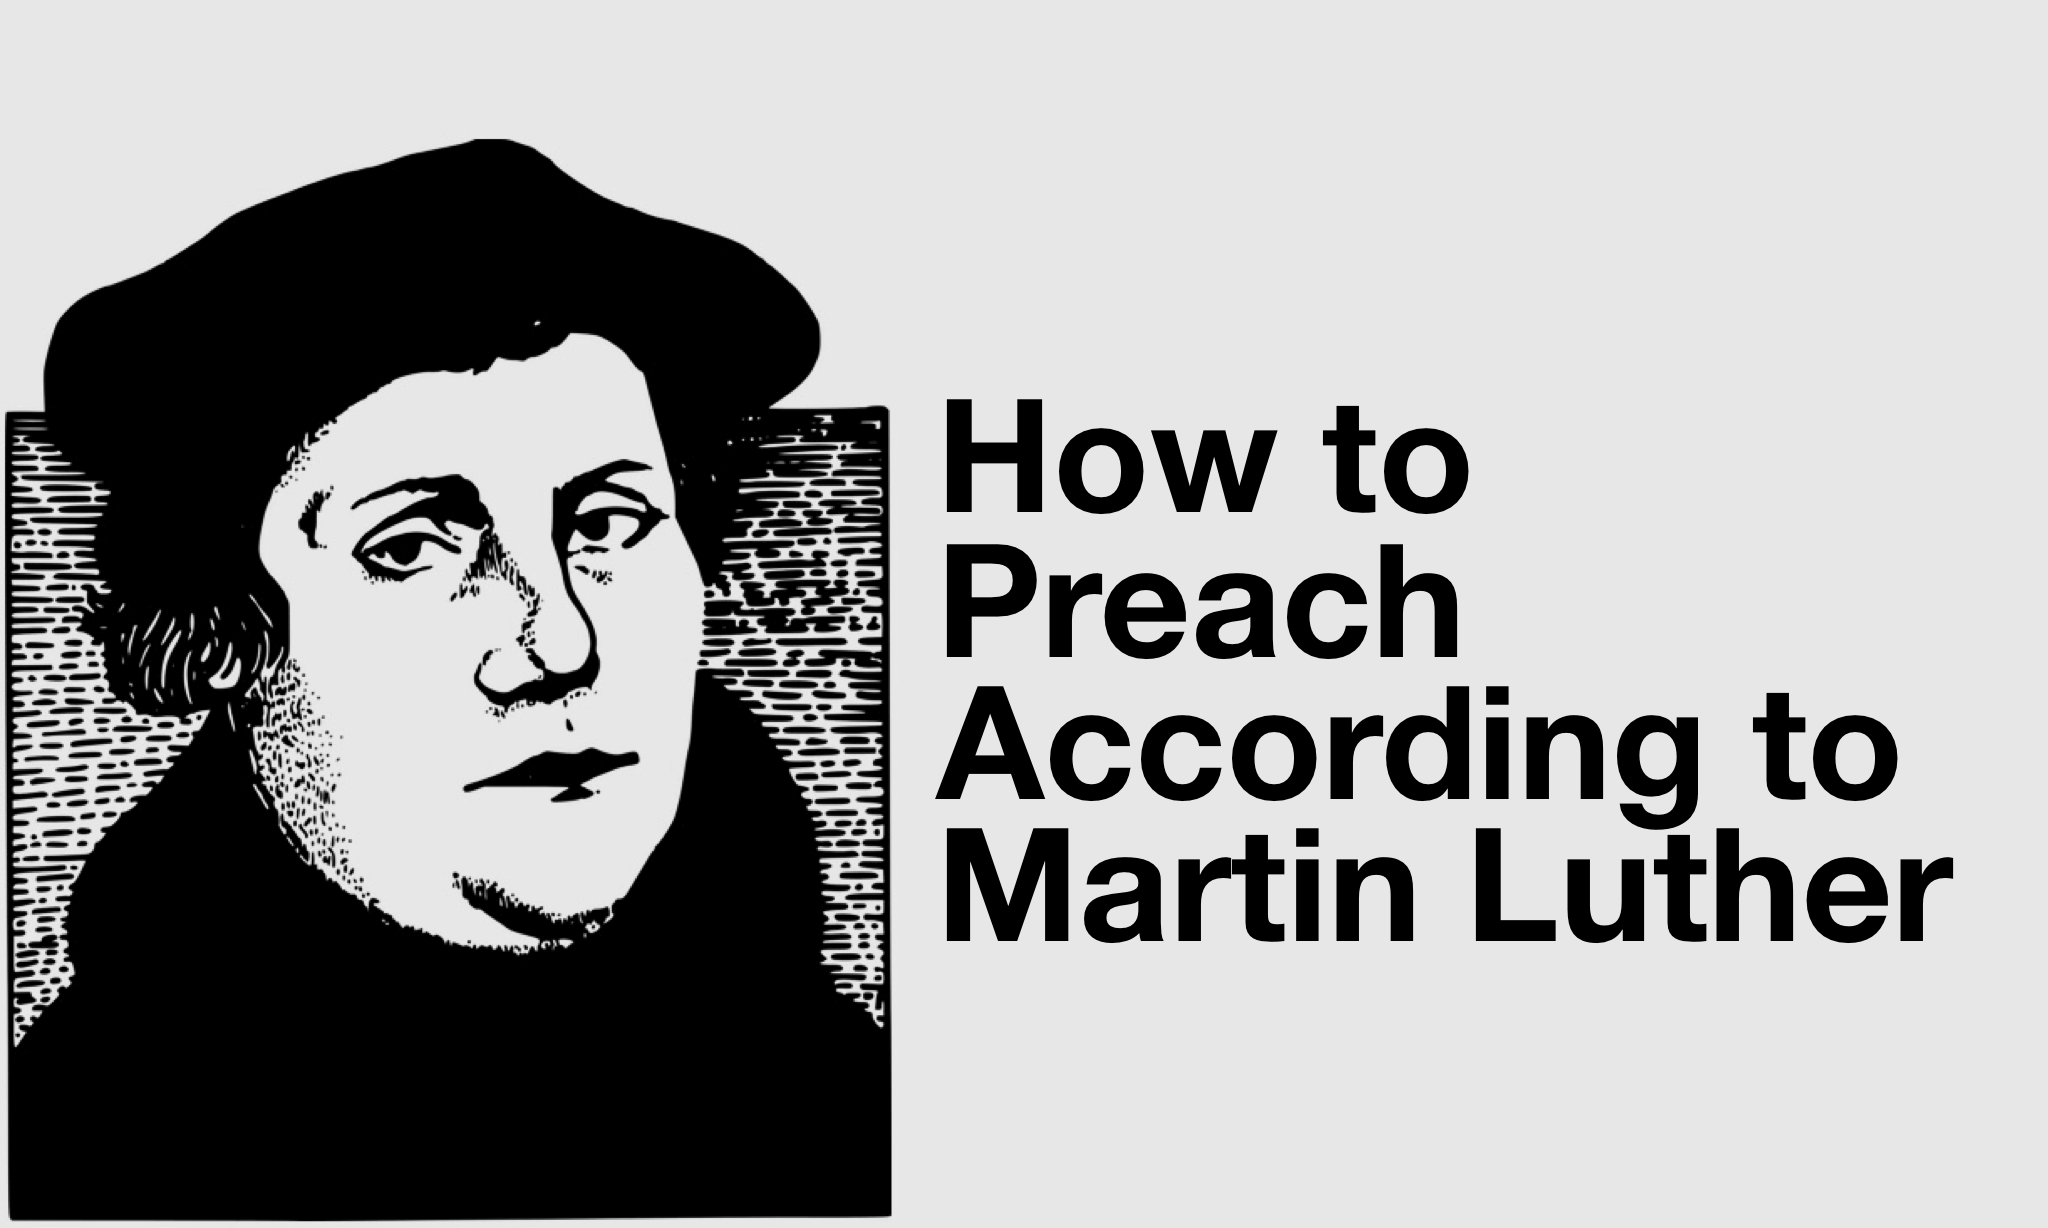 How to Preach Well According to Martin Luther - Pro Preacher